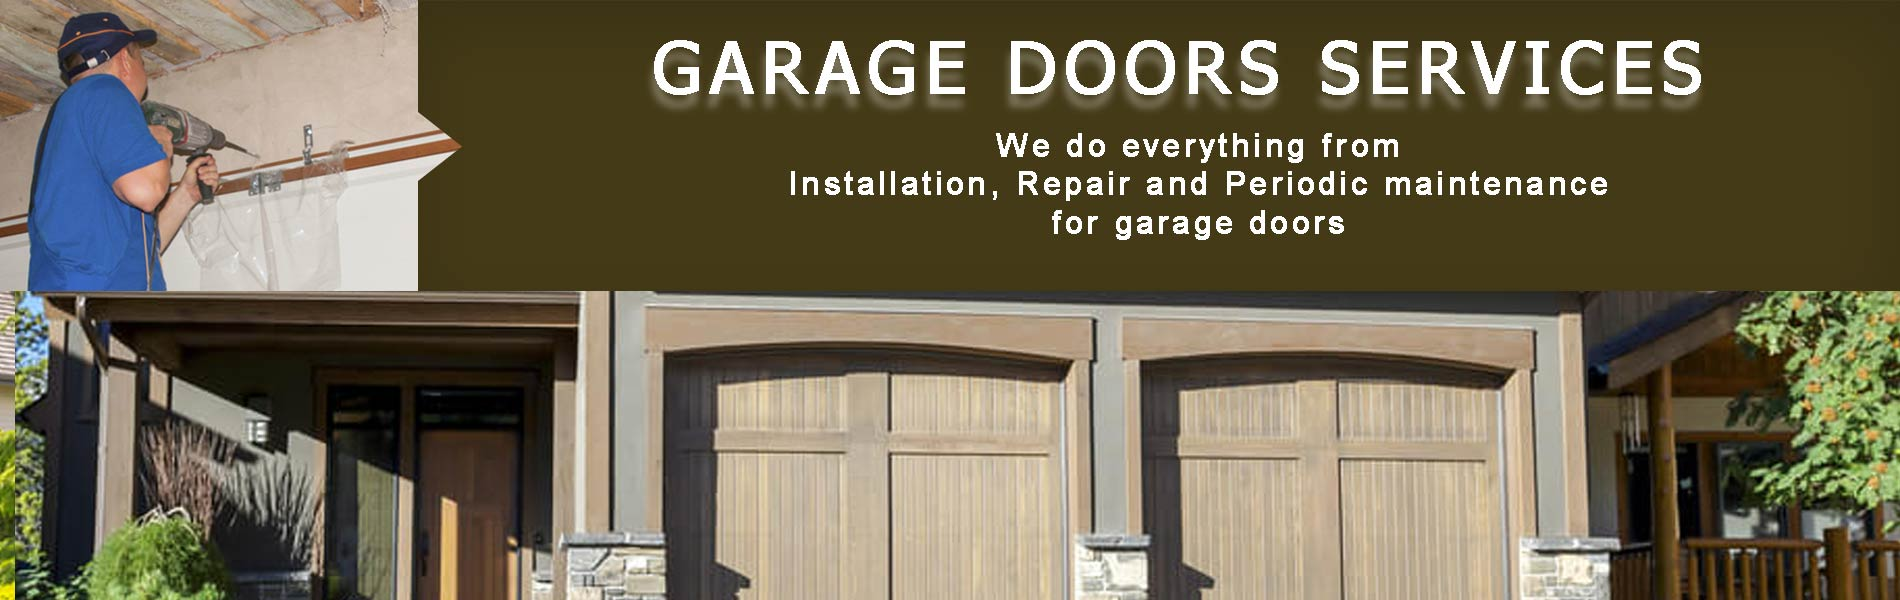 United Garage Door Repair Service Princeton, NJ 609-447-1407